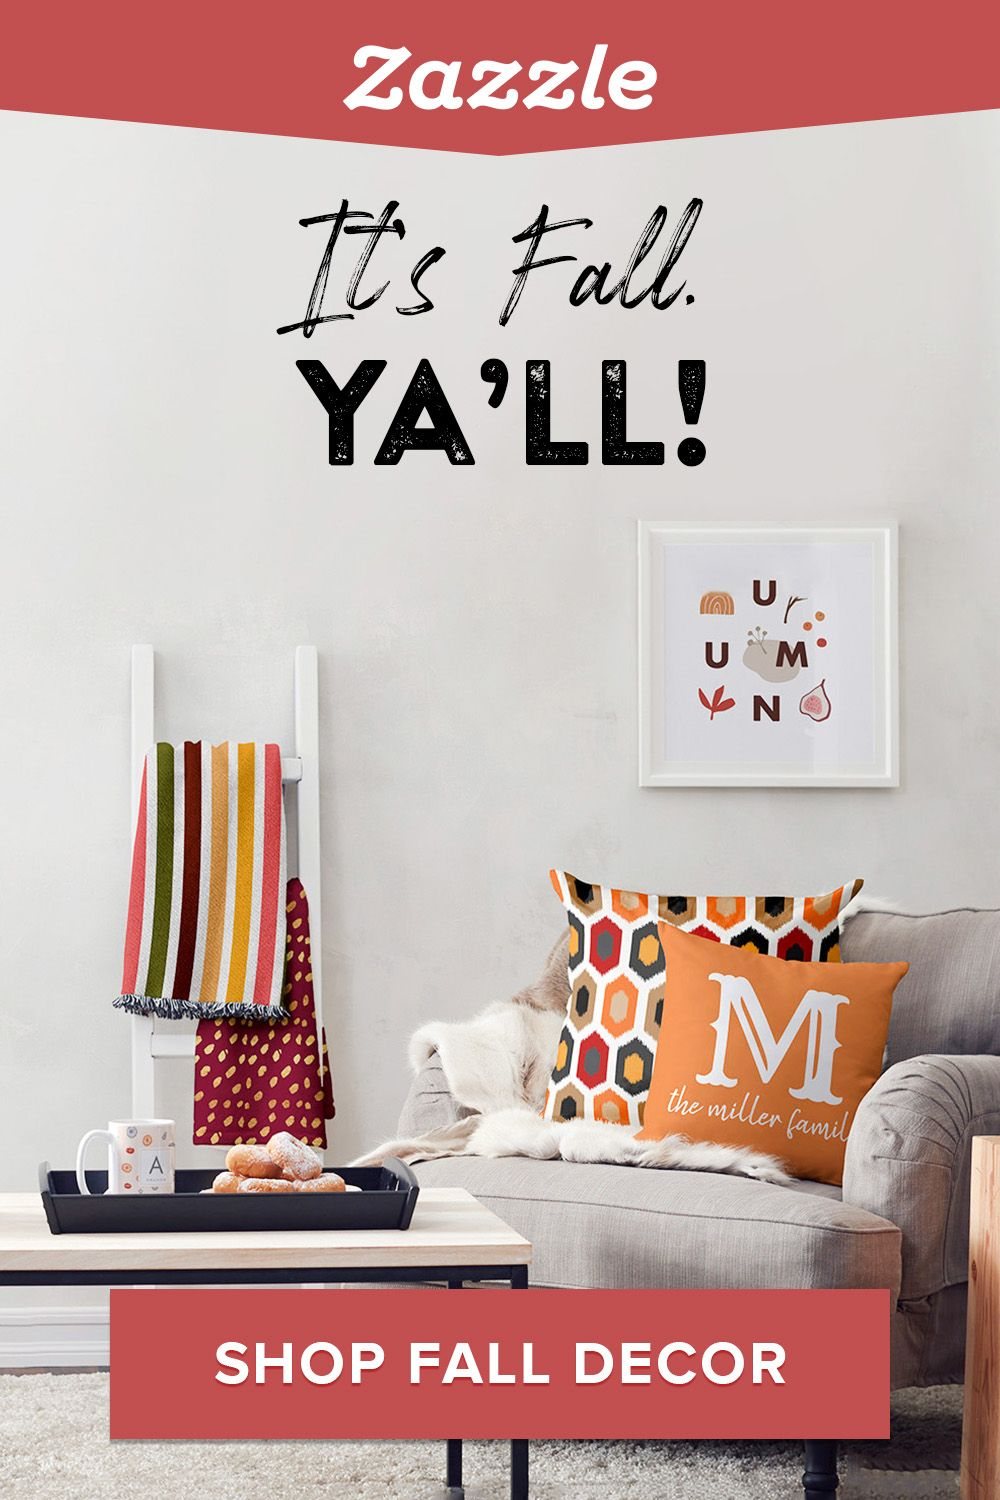 It's fall, y'all! Refresh your home decor with a custom pillows, canvas prints, candles, mugs and more. Choose from hundreds of designs or create your own.